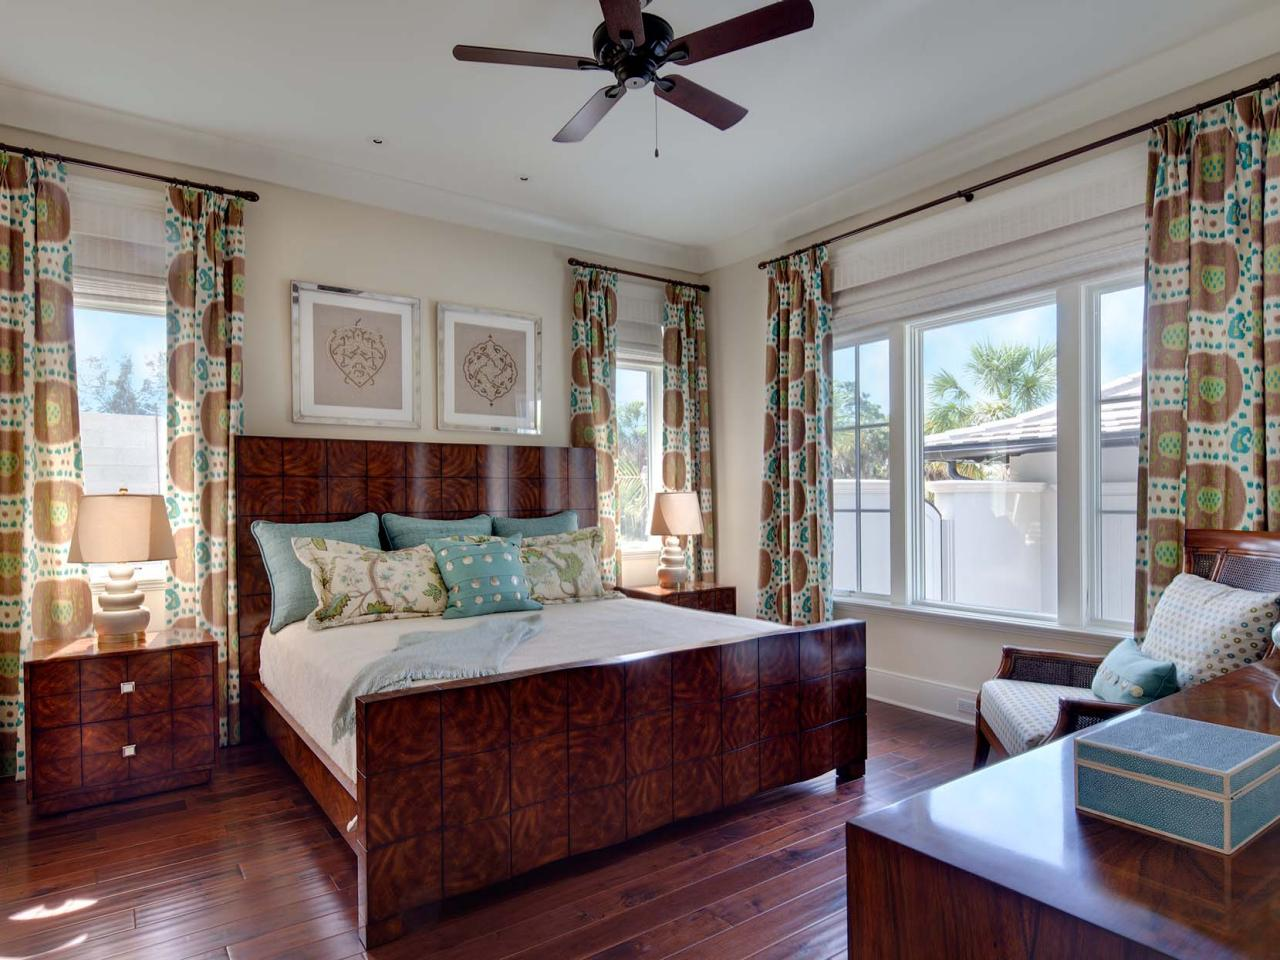 Stylish Wood Transitional Bedroom With Patterned Wood Bed